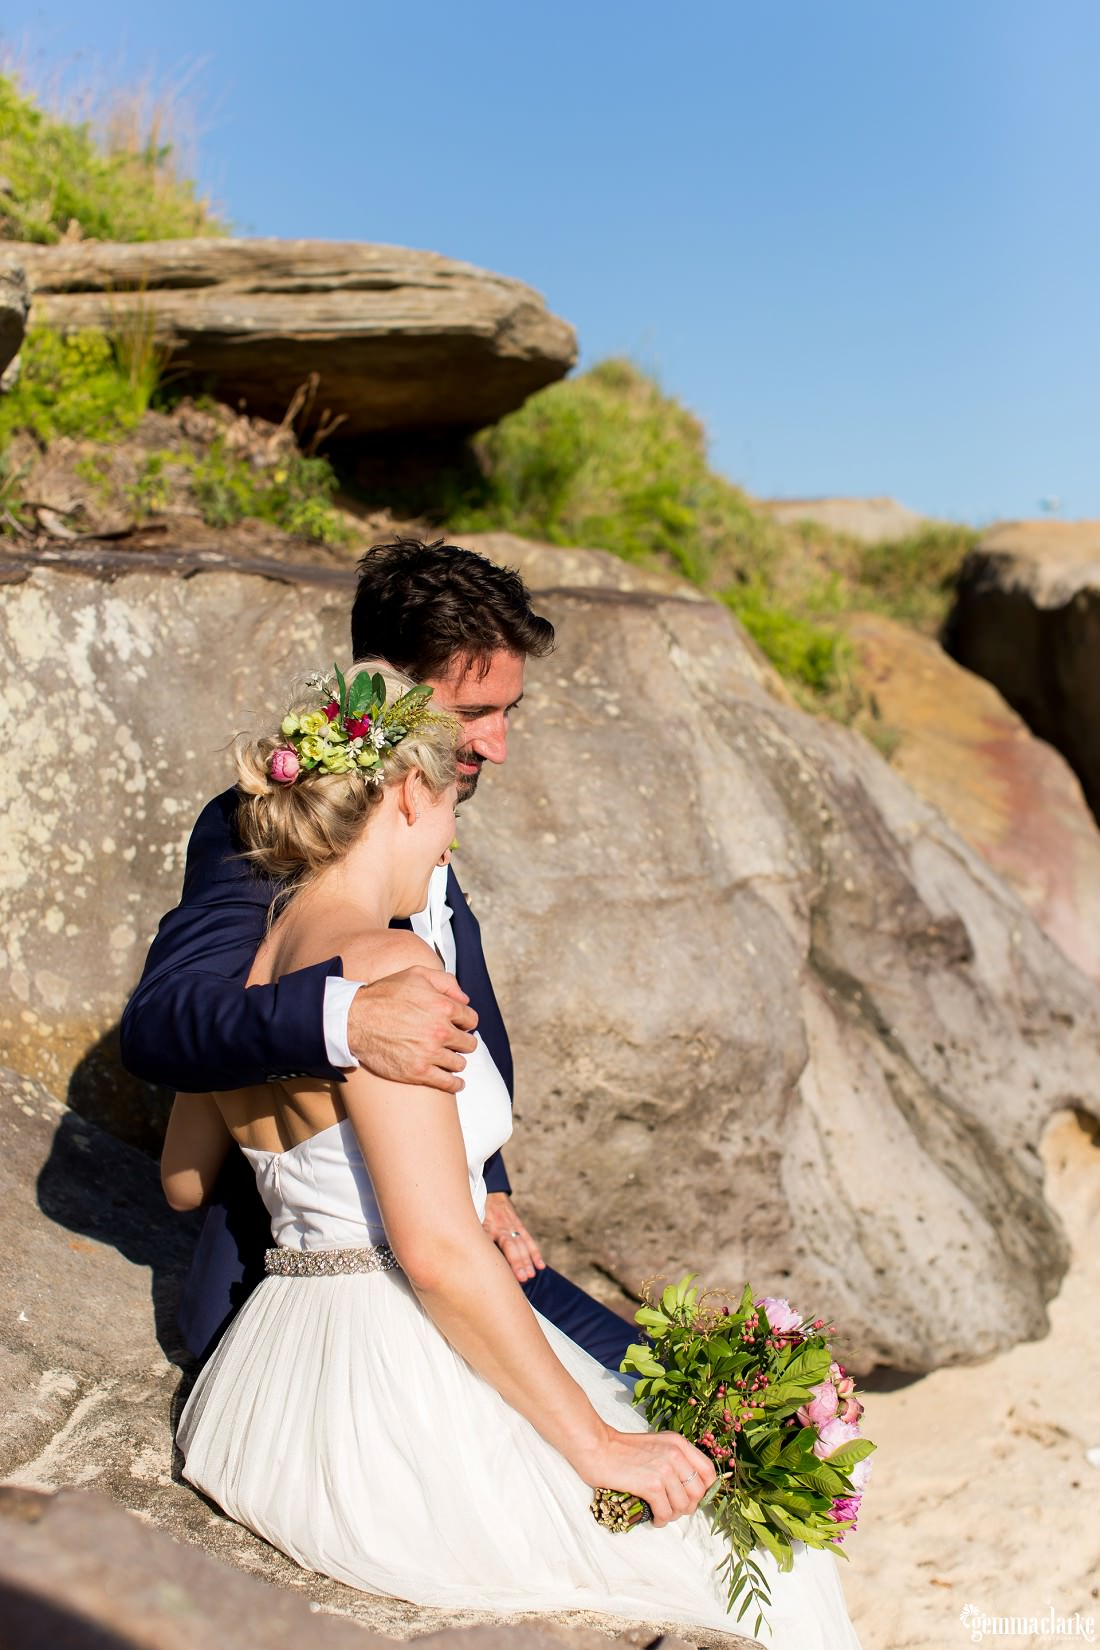 A groom with his arm around his bride's shoulders as they sit on a large rock on a beach